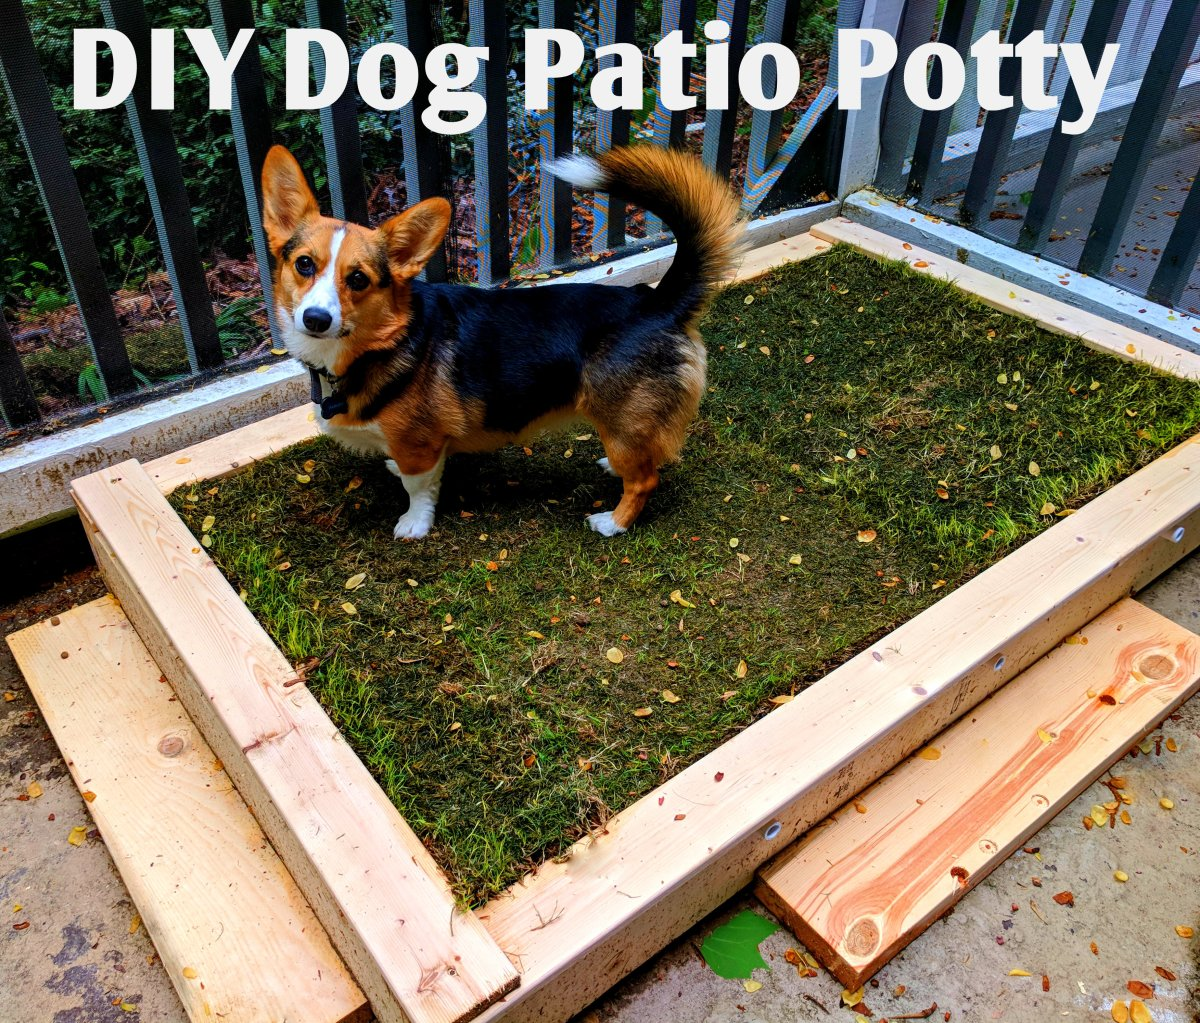 How To Build A Diy Patio Potty For Your Dog Dengarden